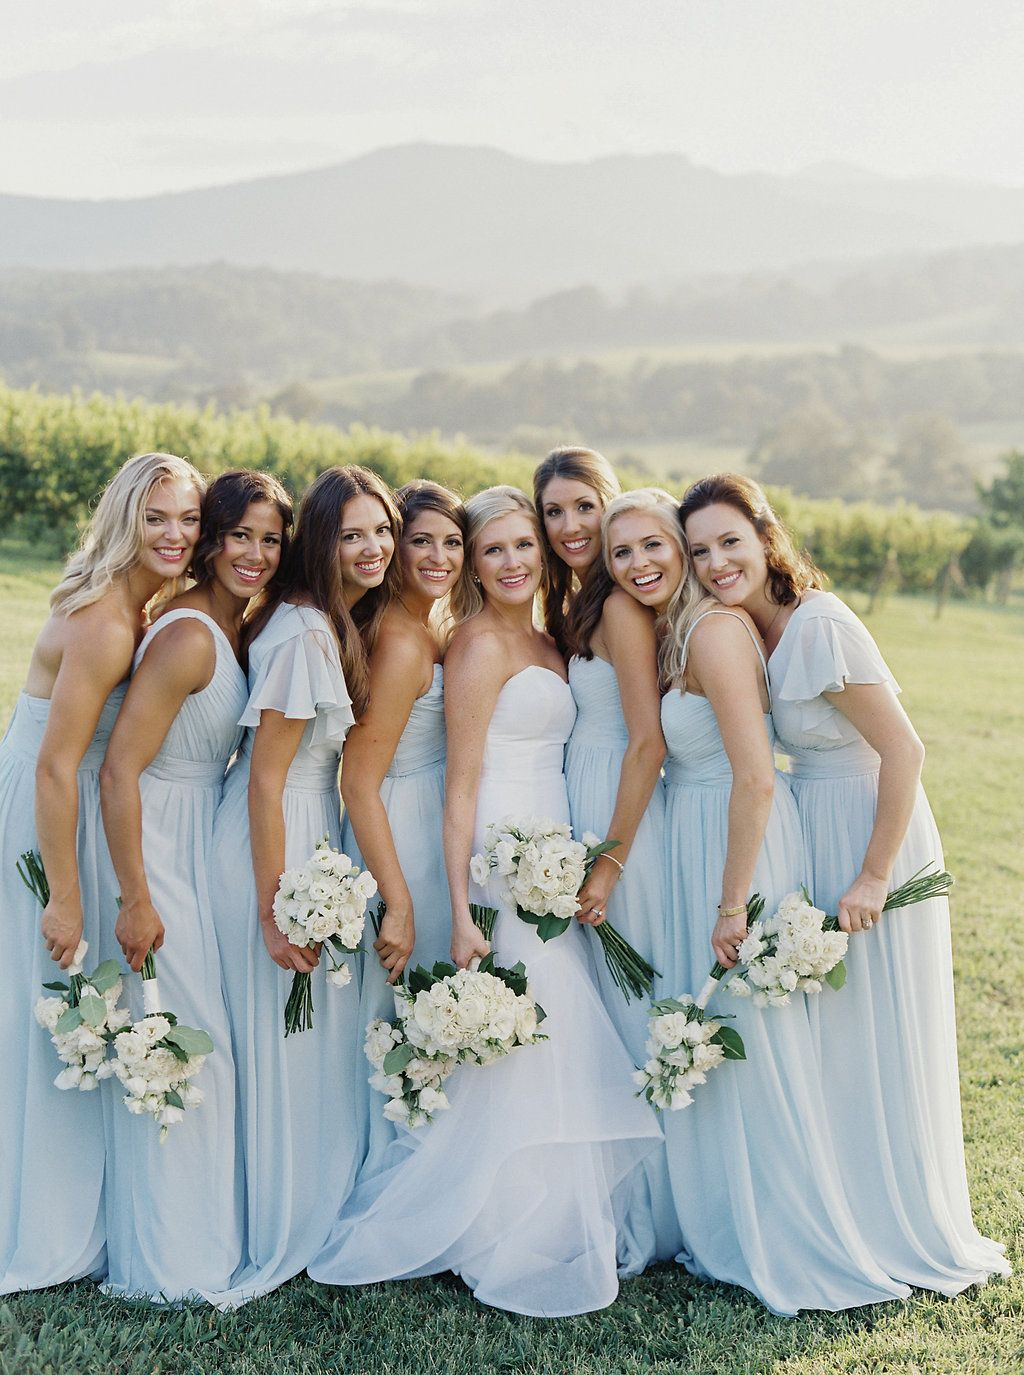 Light Blue Bridesmaids Dresses With White Rose Bouquets At Pippin